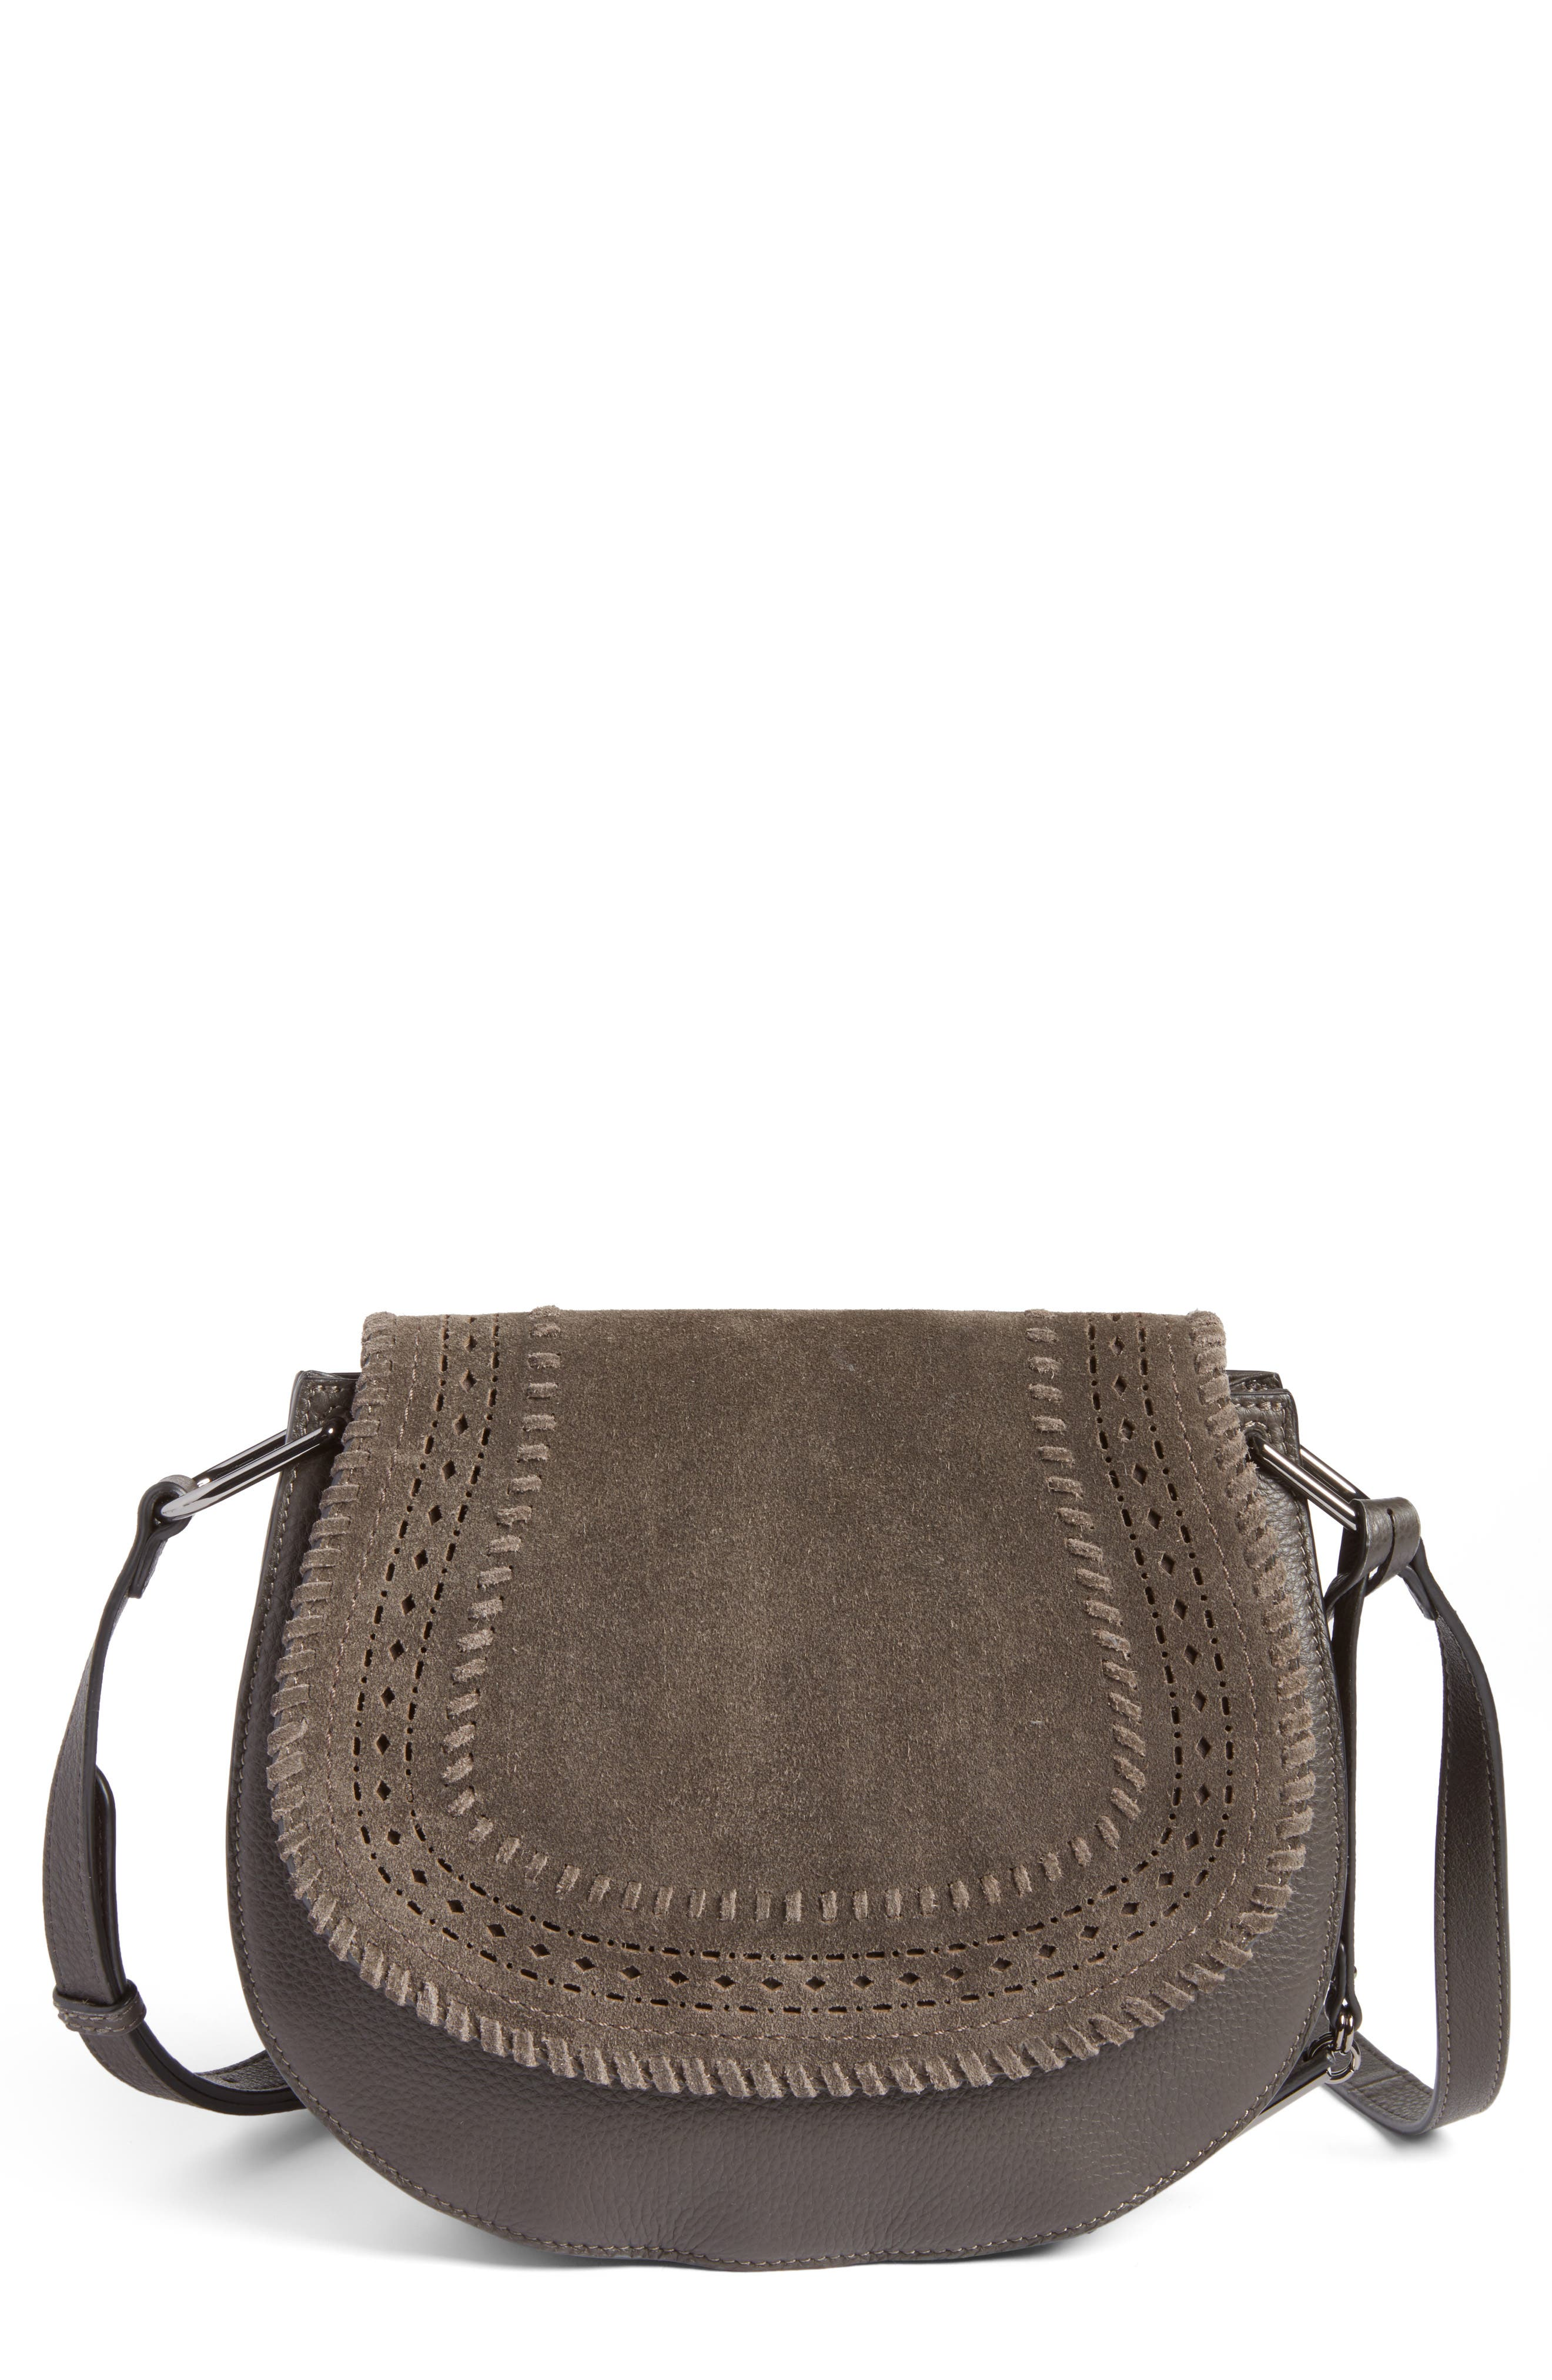 Vince Camuto Kirie Suede & Leather Crossbody Saddle Bag (Nordstrom Exclusive)